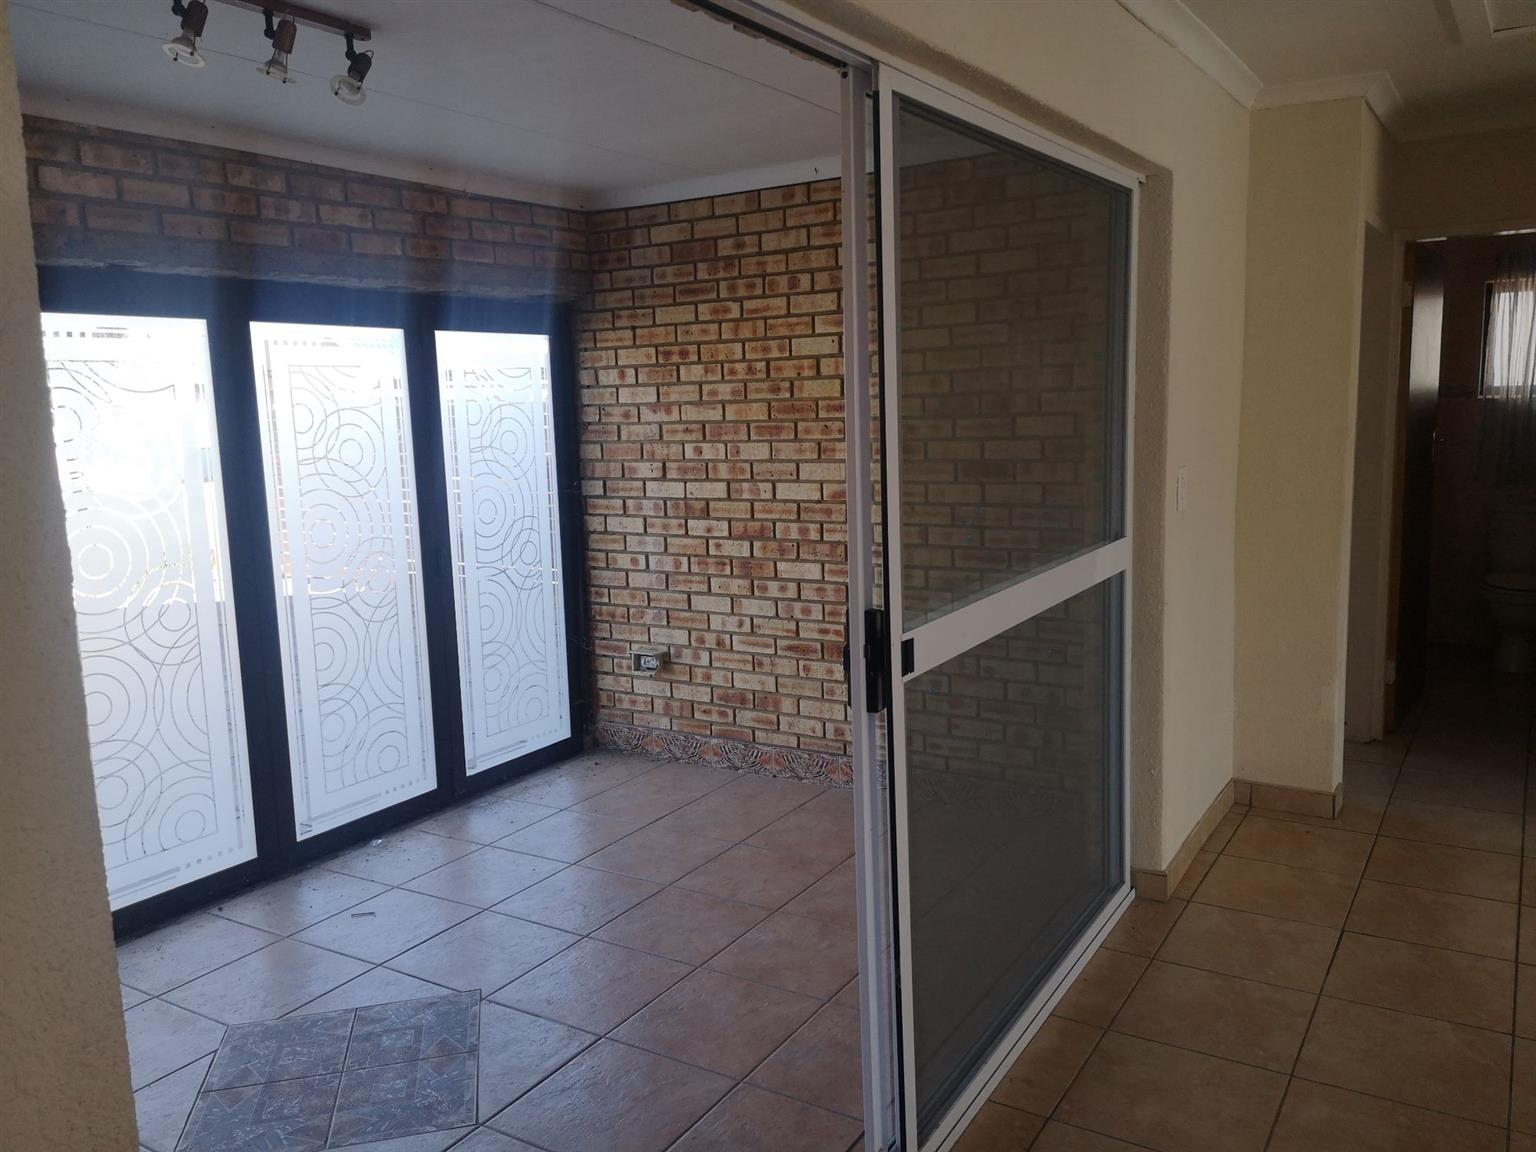 Misty Bay, Vaal Marina Property Liquidation Auction On Site 16 July 2020 SECTIONAL TITLE